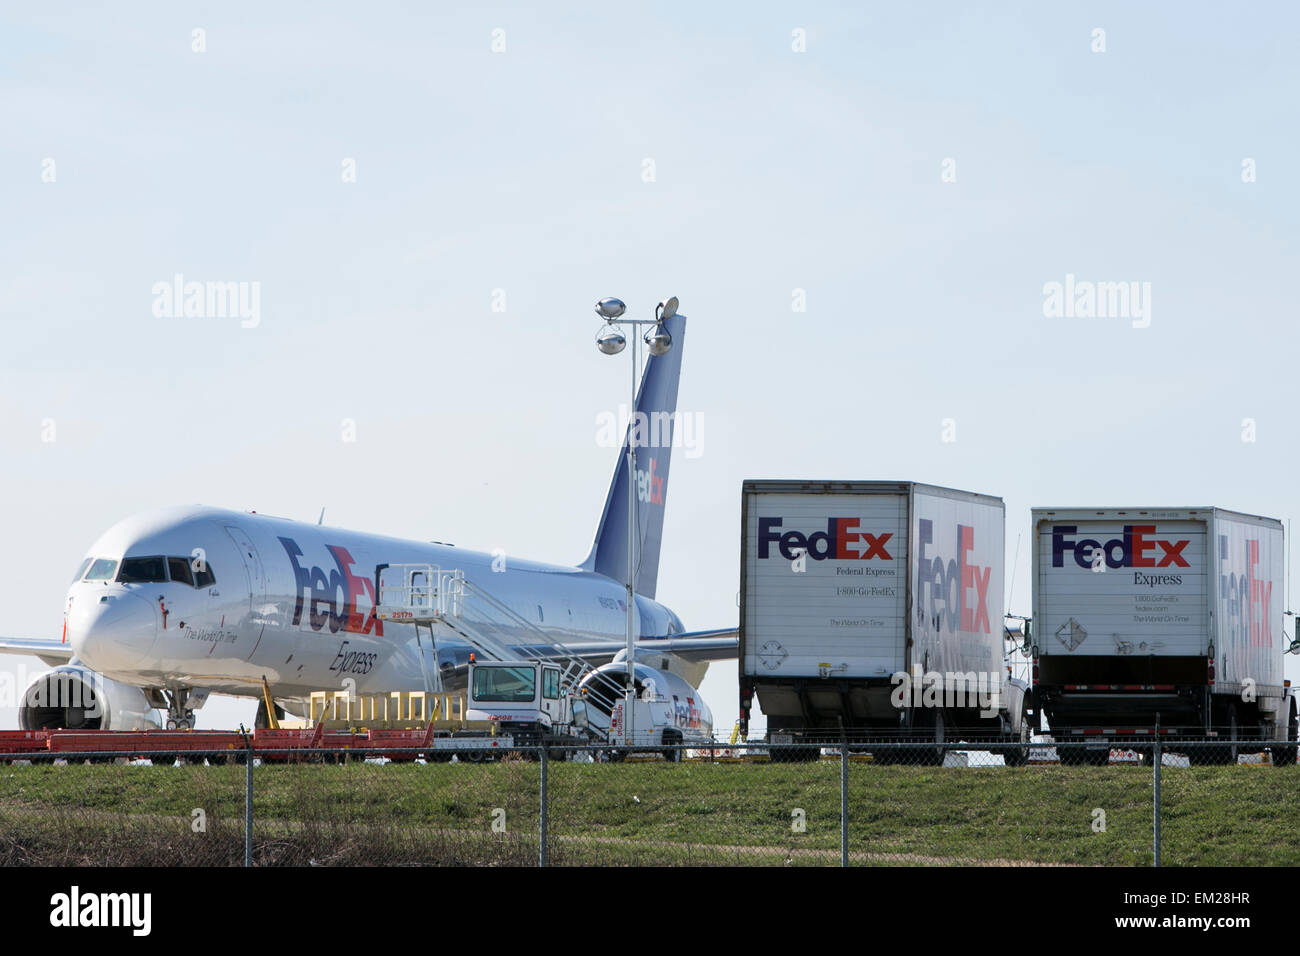 FedEx cargo planes at the Lehigh Valley International Airport in Allentown, Pennsylvania. - Stock Image